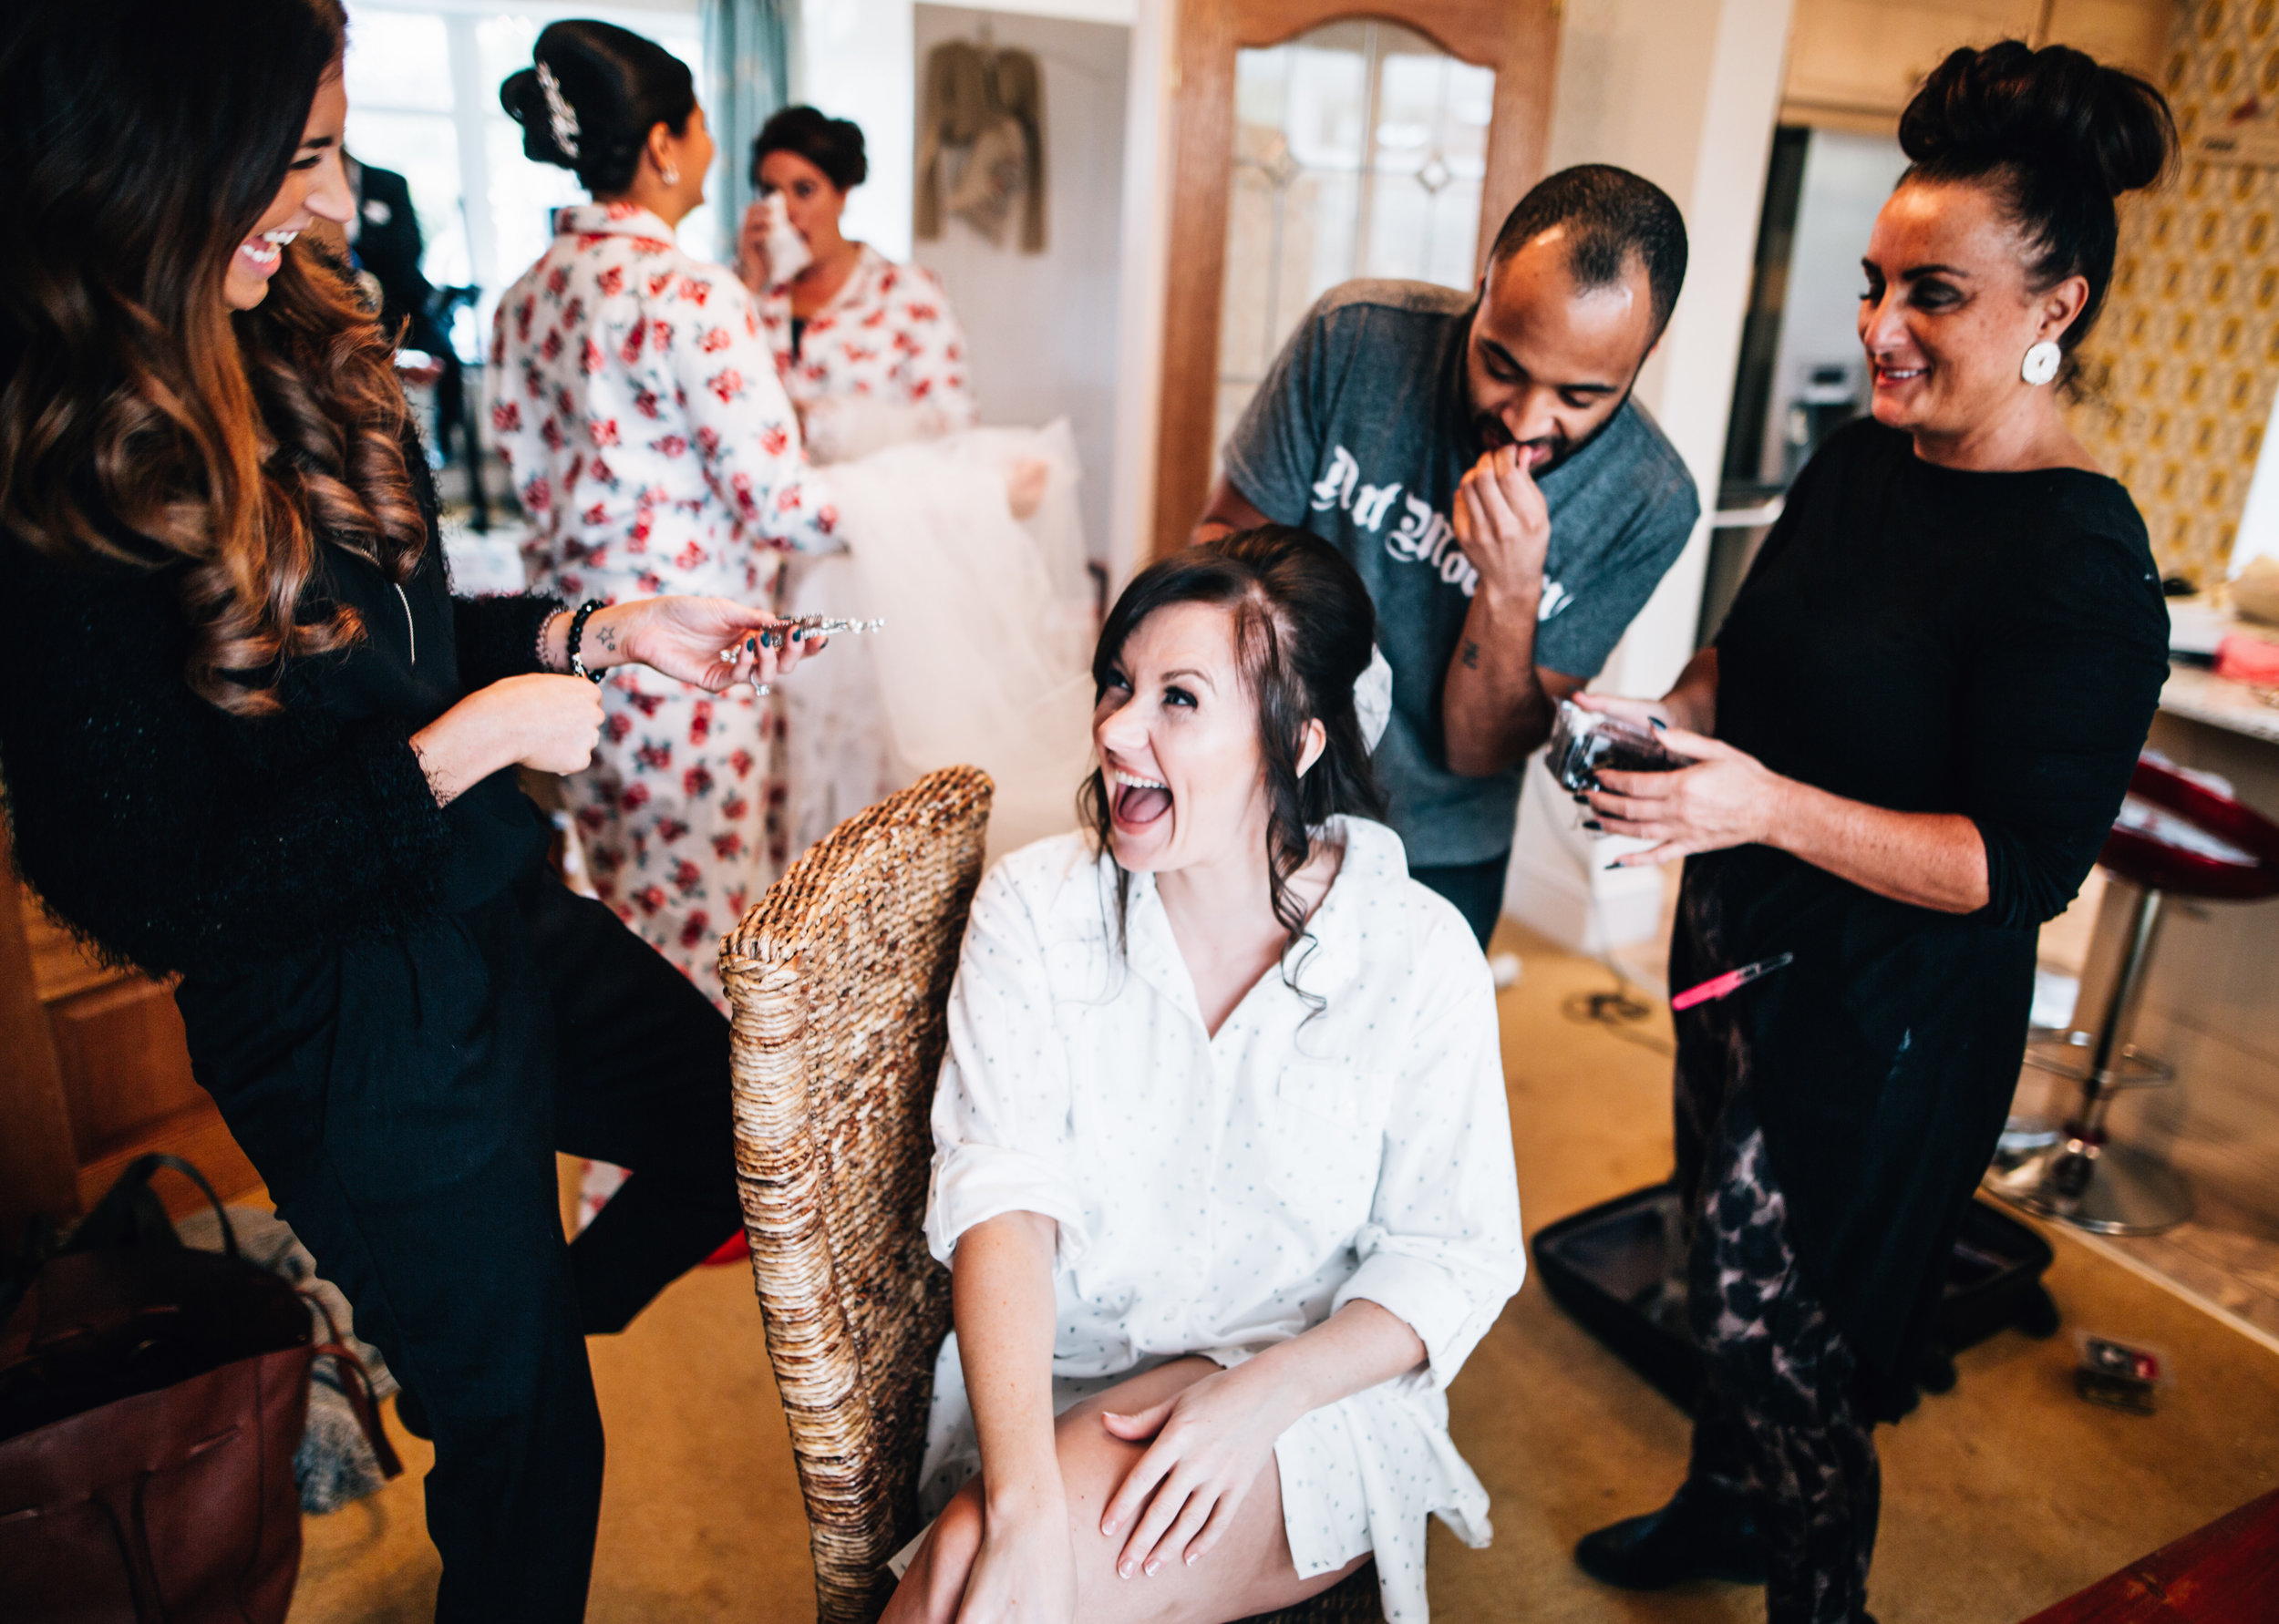 real wedding pictures - all the laughs